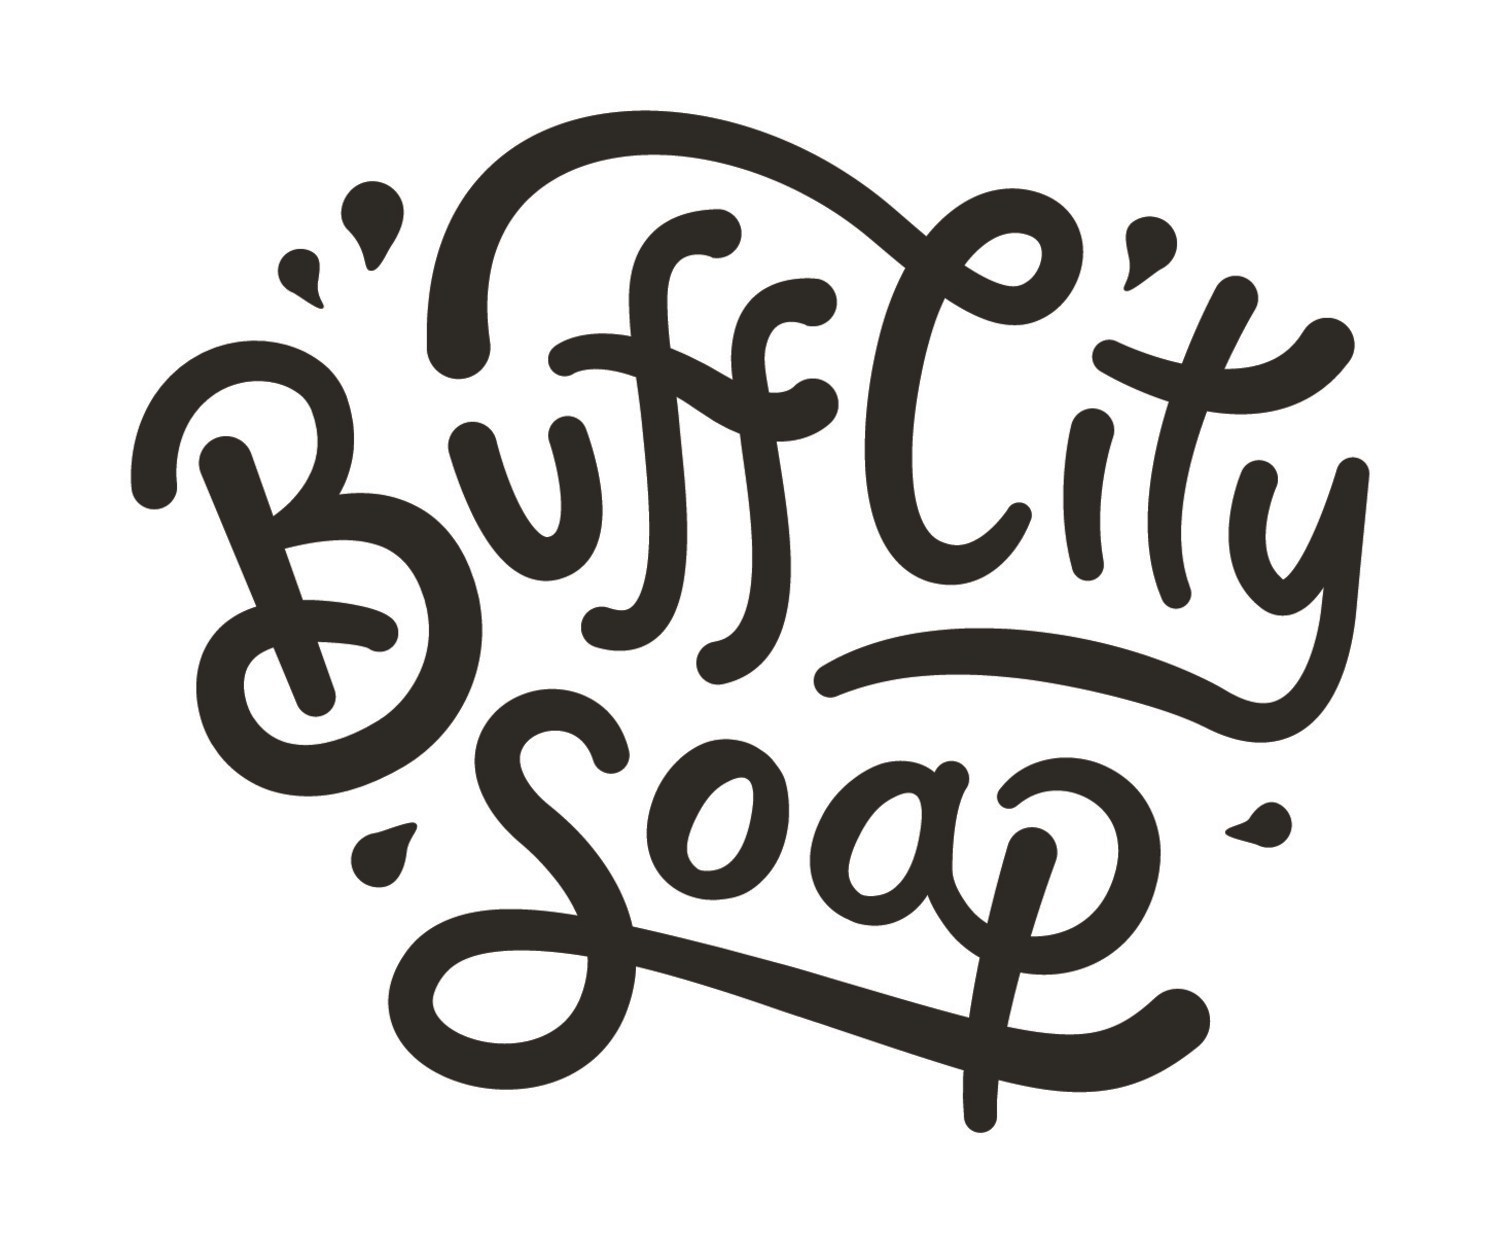 Buff City Soap plans to be the Starbucks of soap